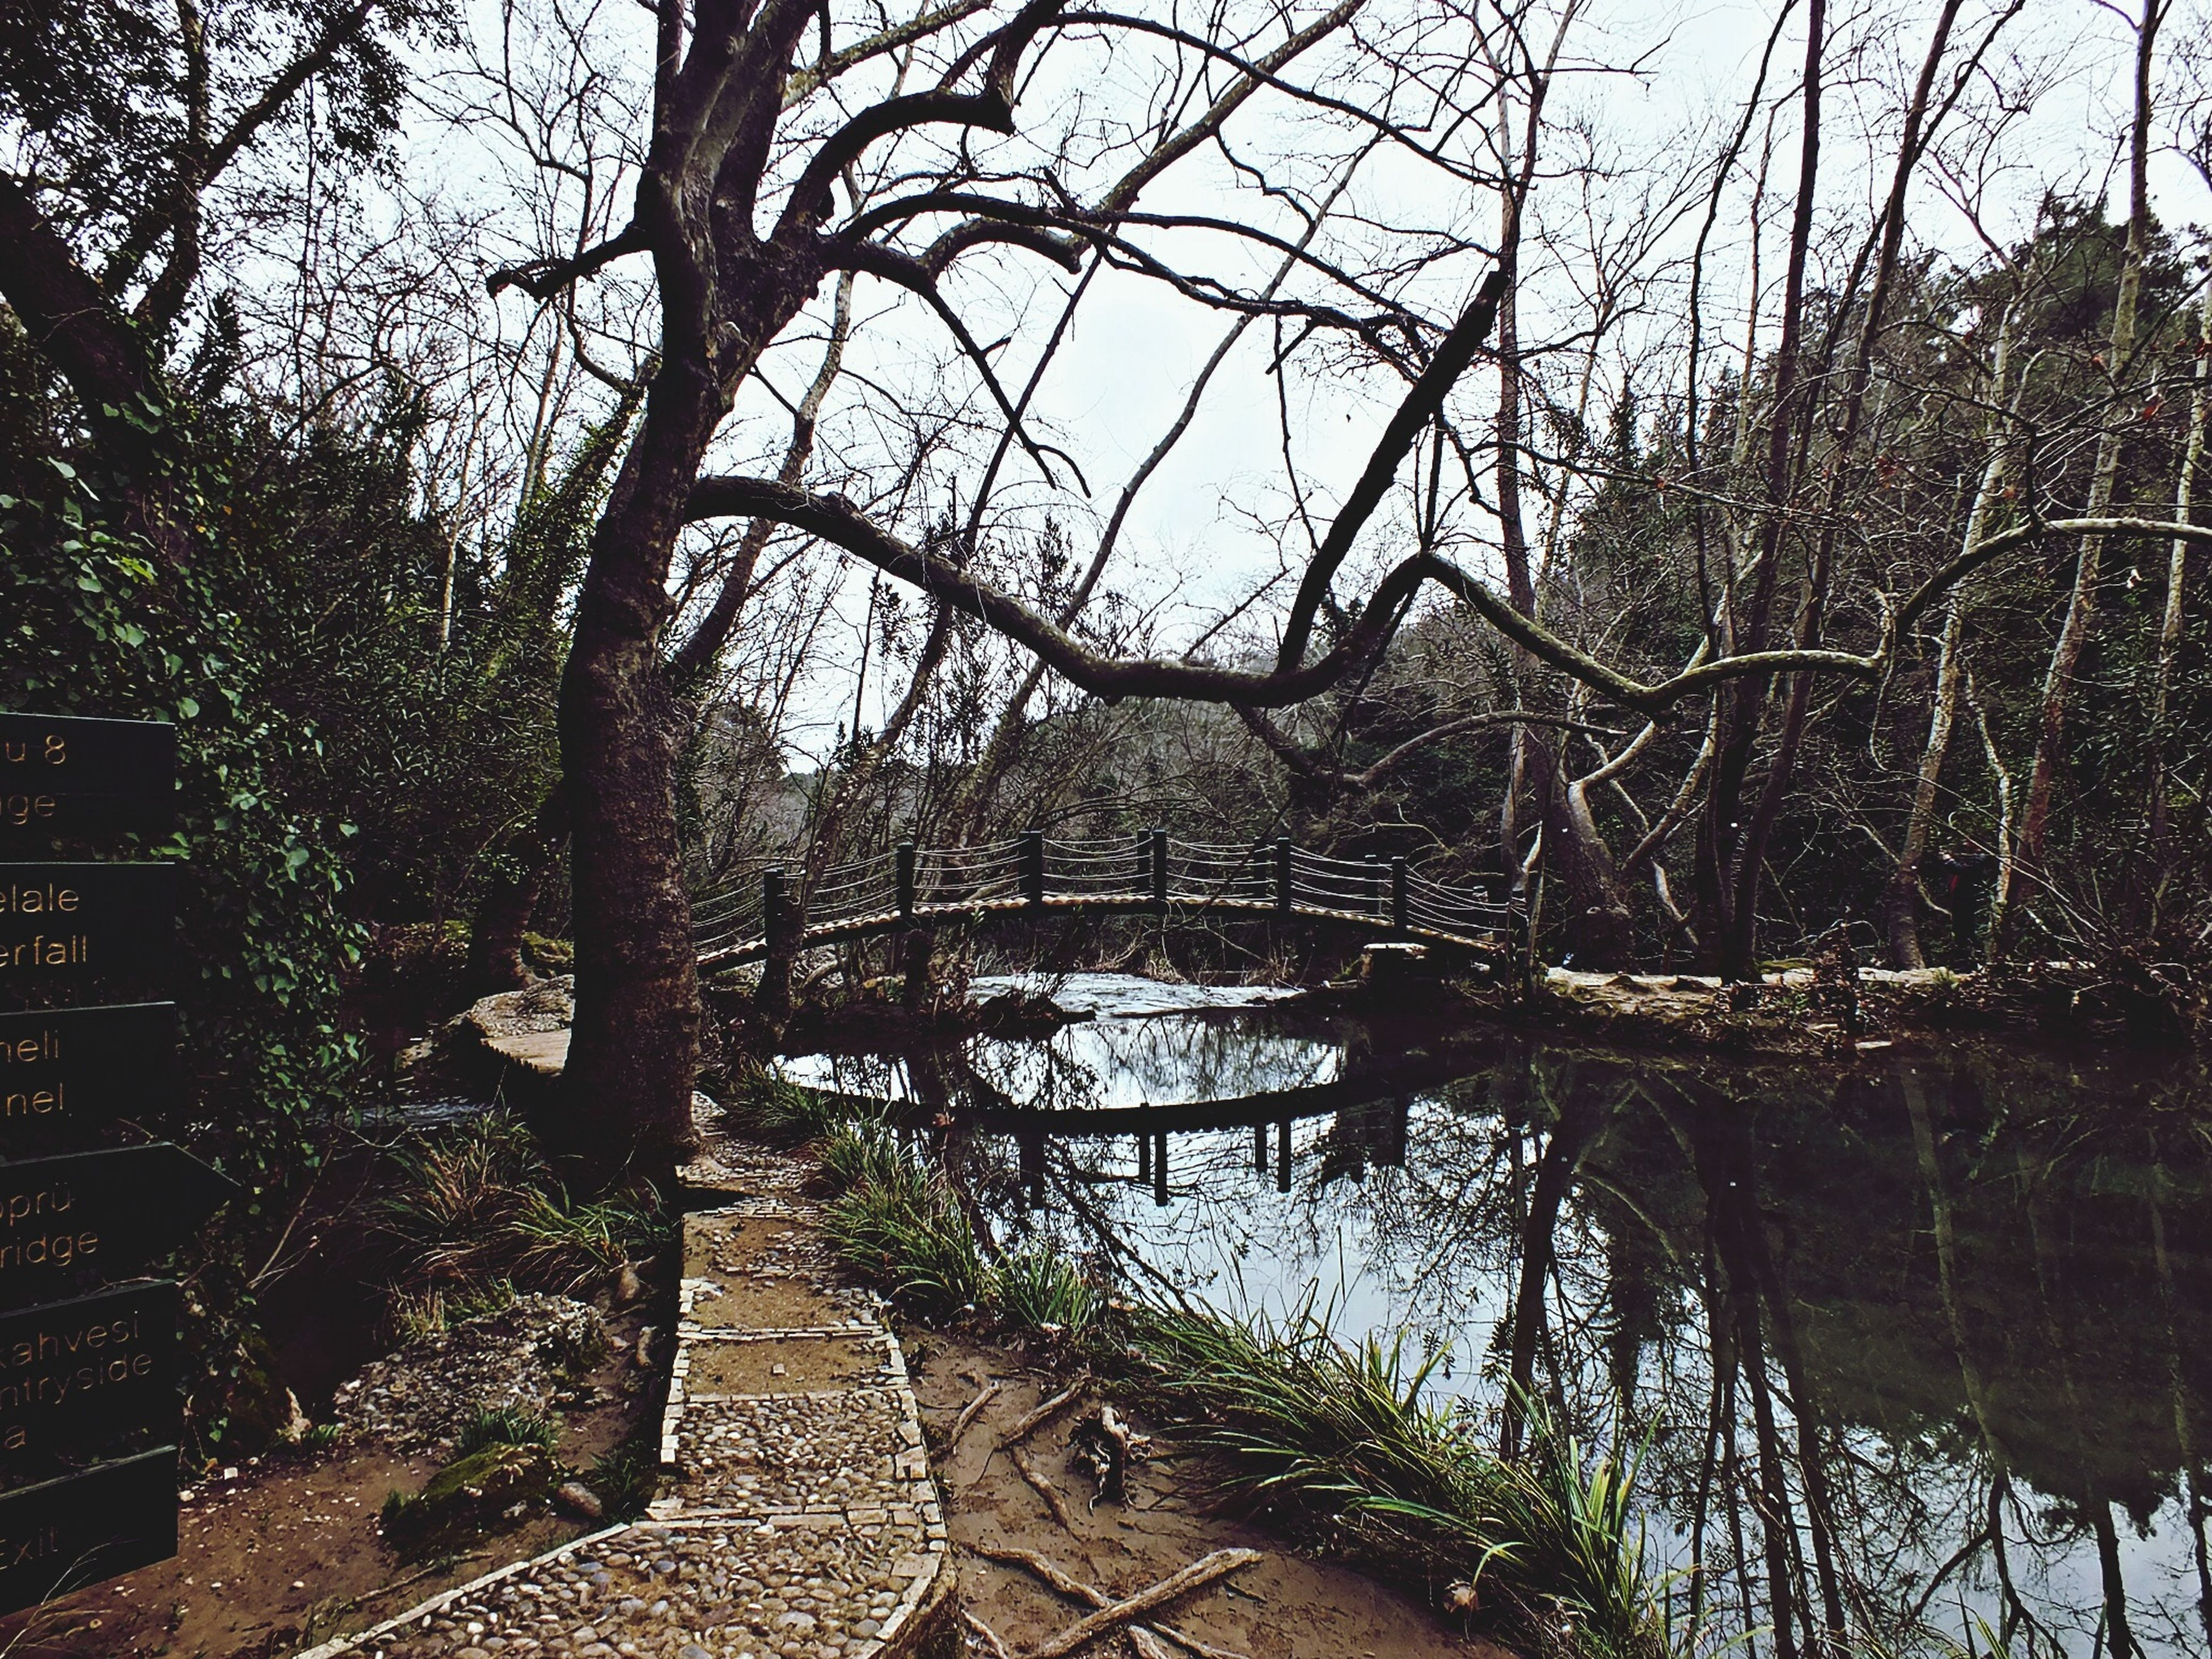 tree, water, branch, bare tree, tranquility, built structure, lake, nature, tranquil scene, sky, architecture, scenics, railing, day, river, reflection, the way forward, outdoors, growth, no people